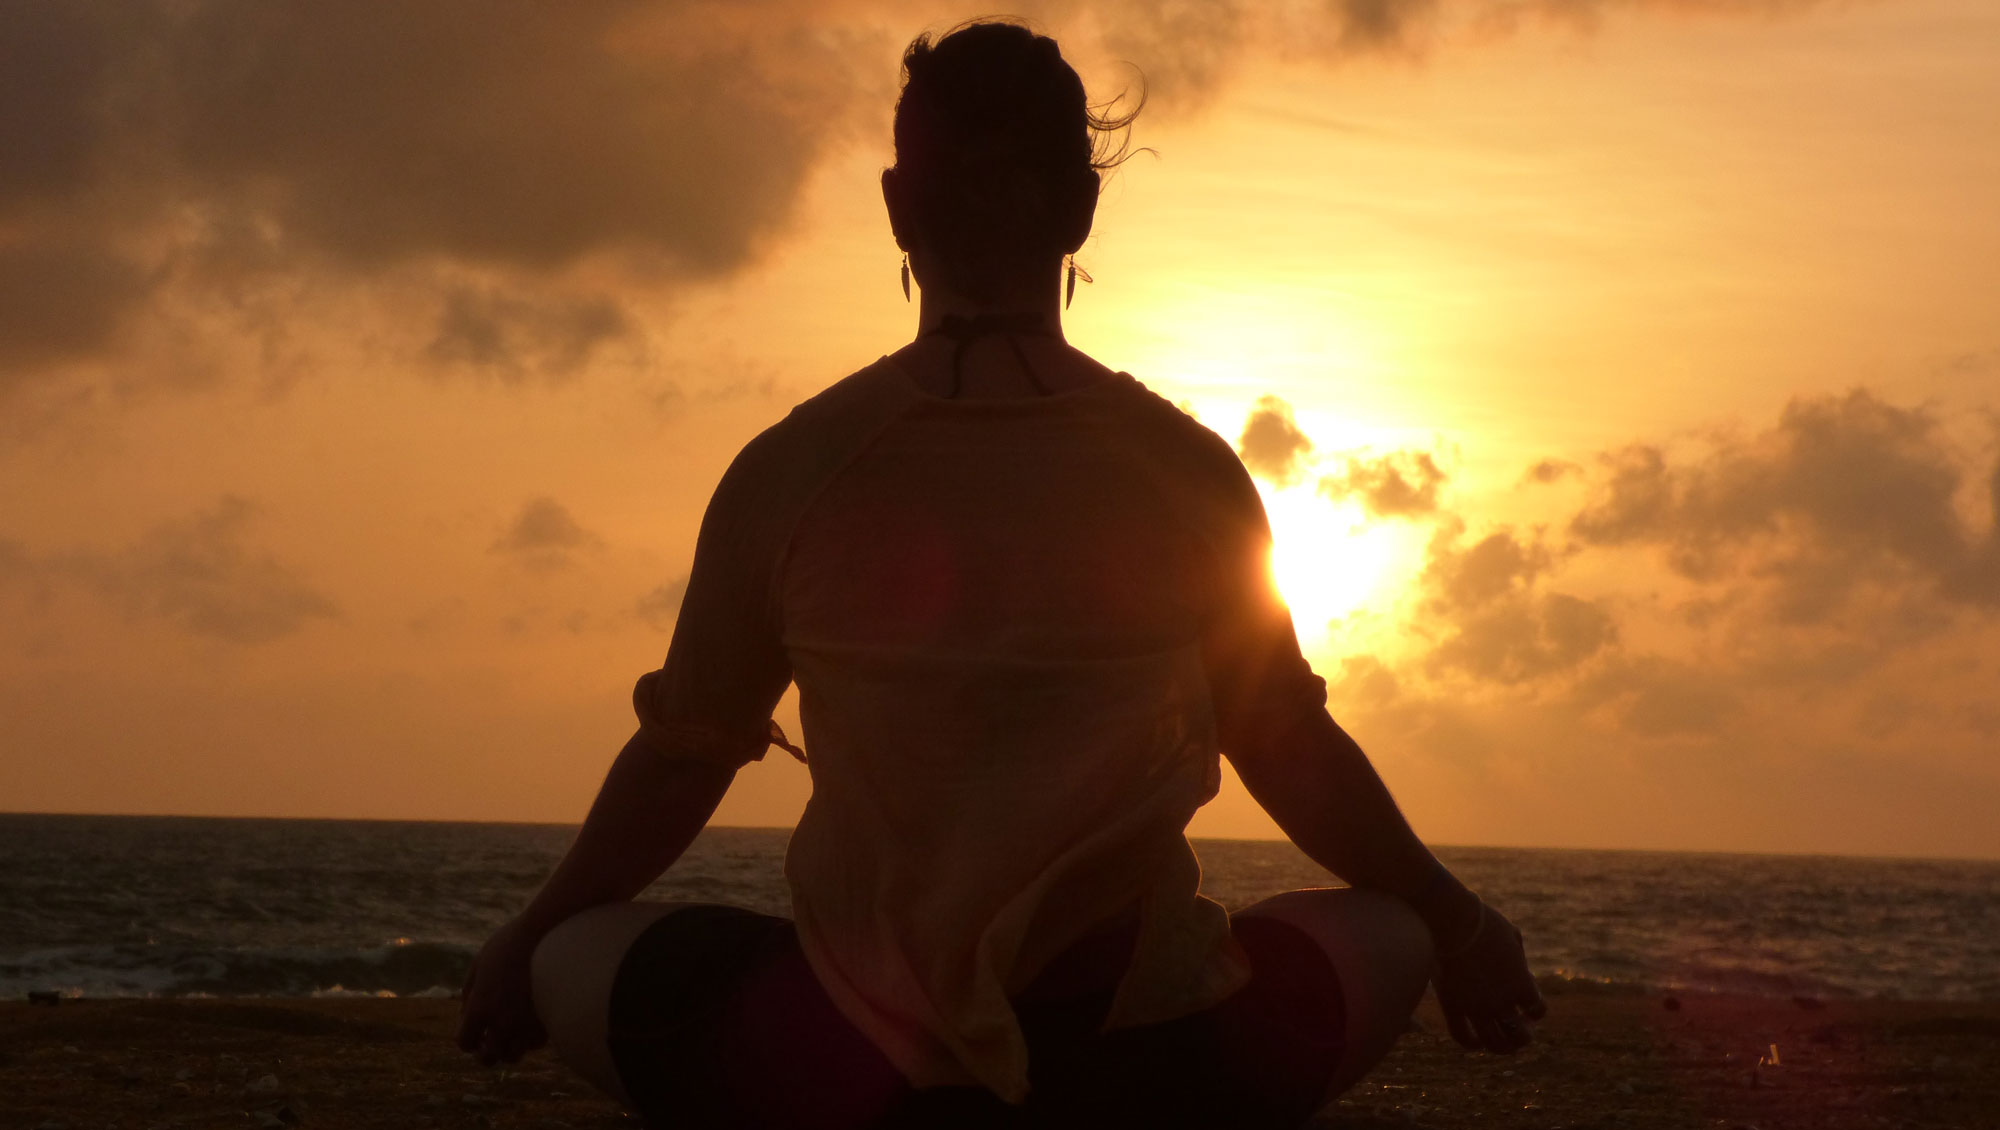 Equanimity Yoga meditating on a beach at sunset